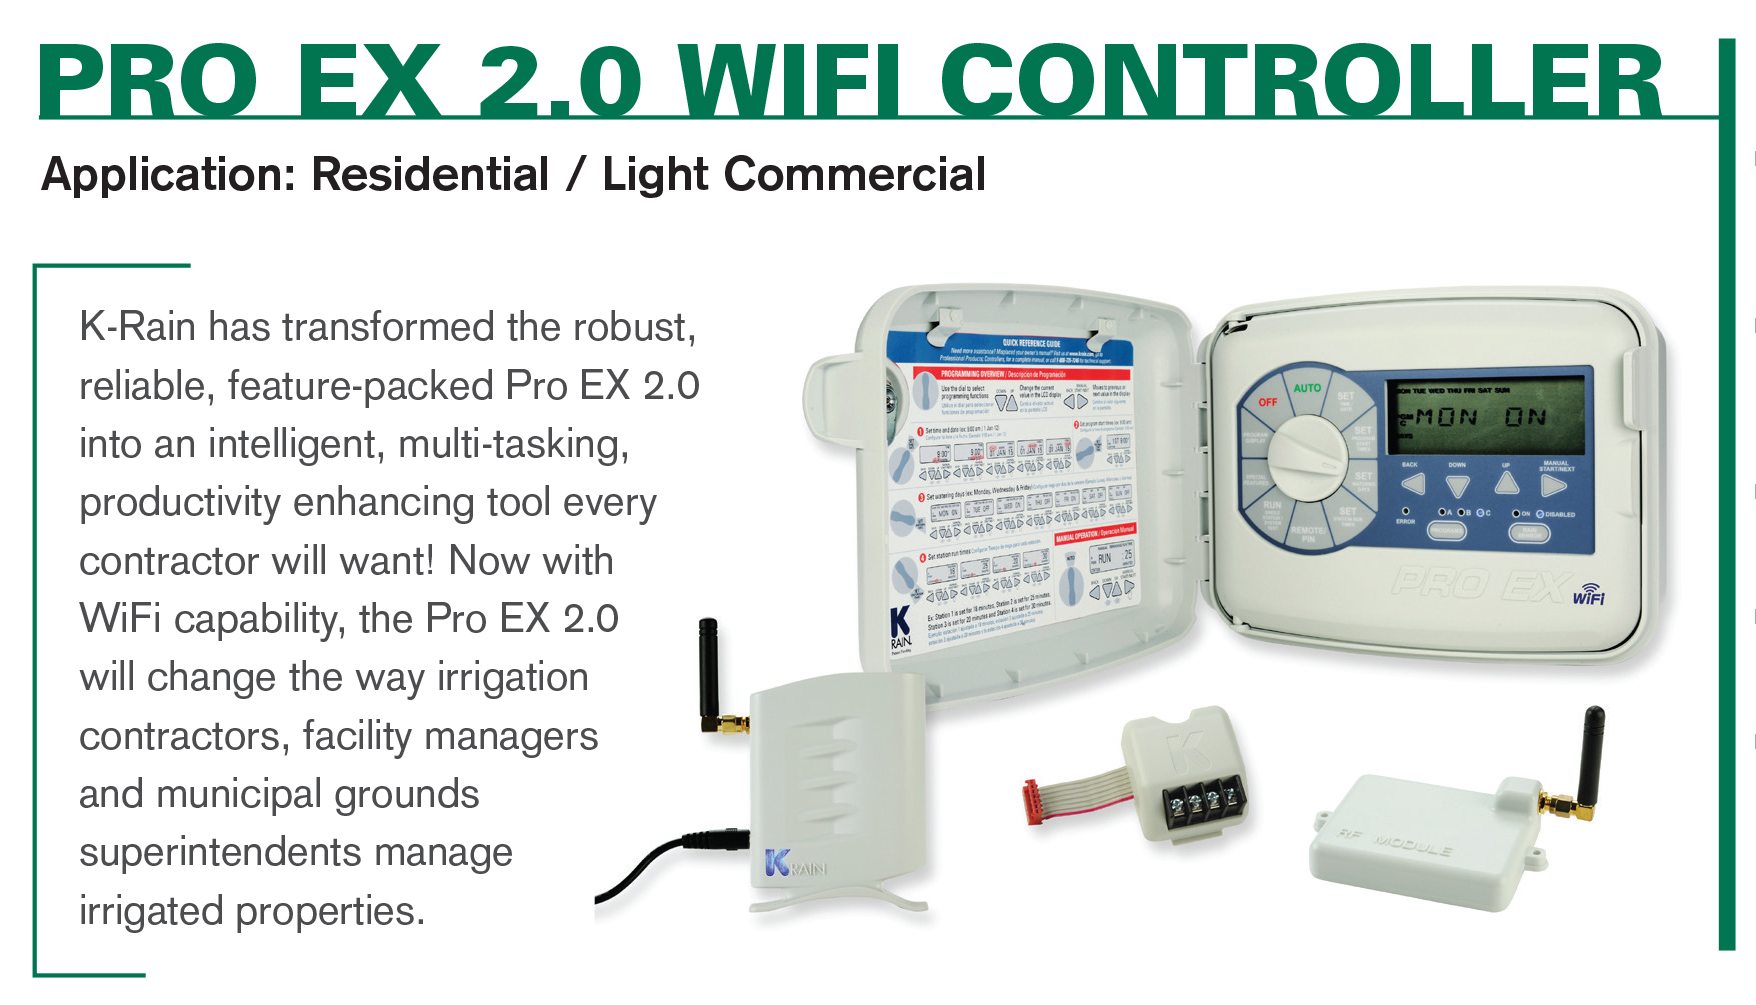 Pro Ex 2.0 WiFi Enabled Irrigation Controller